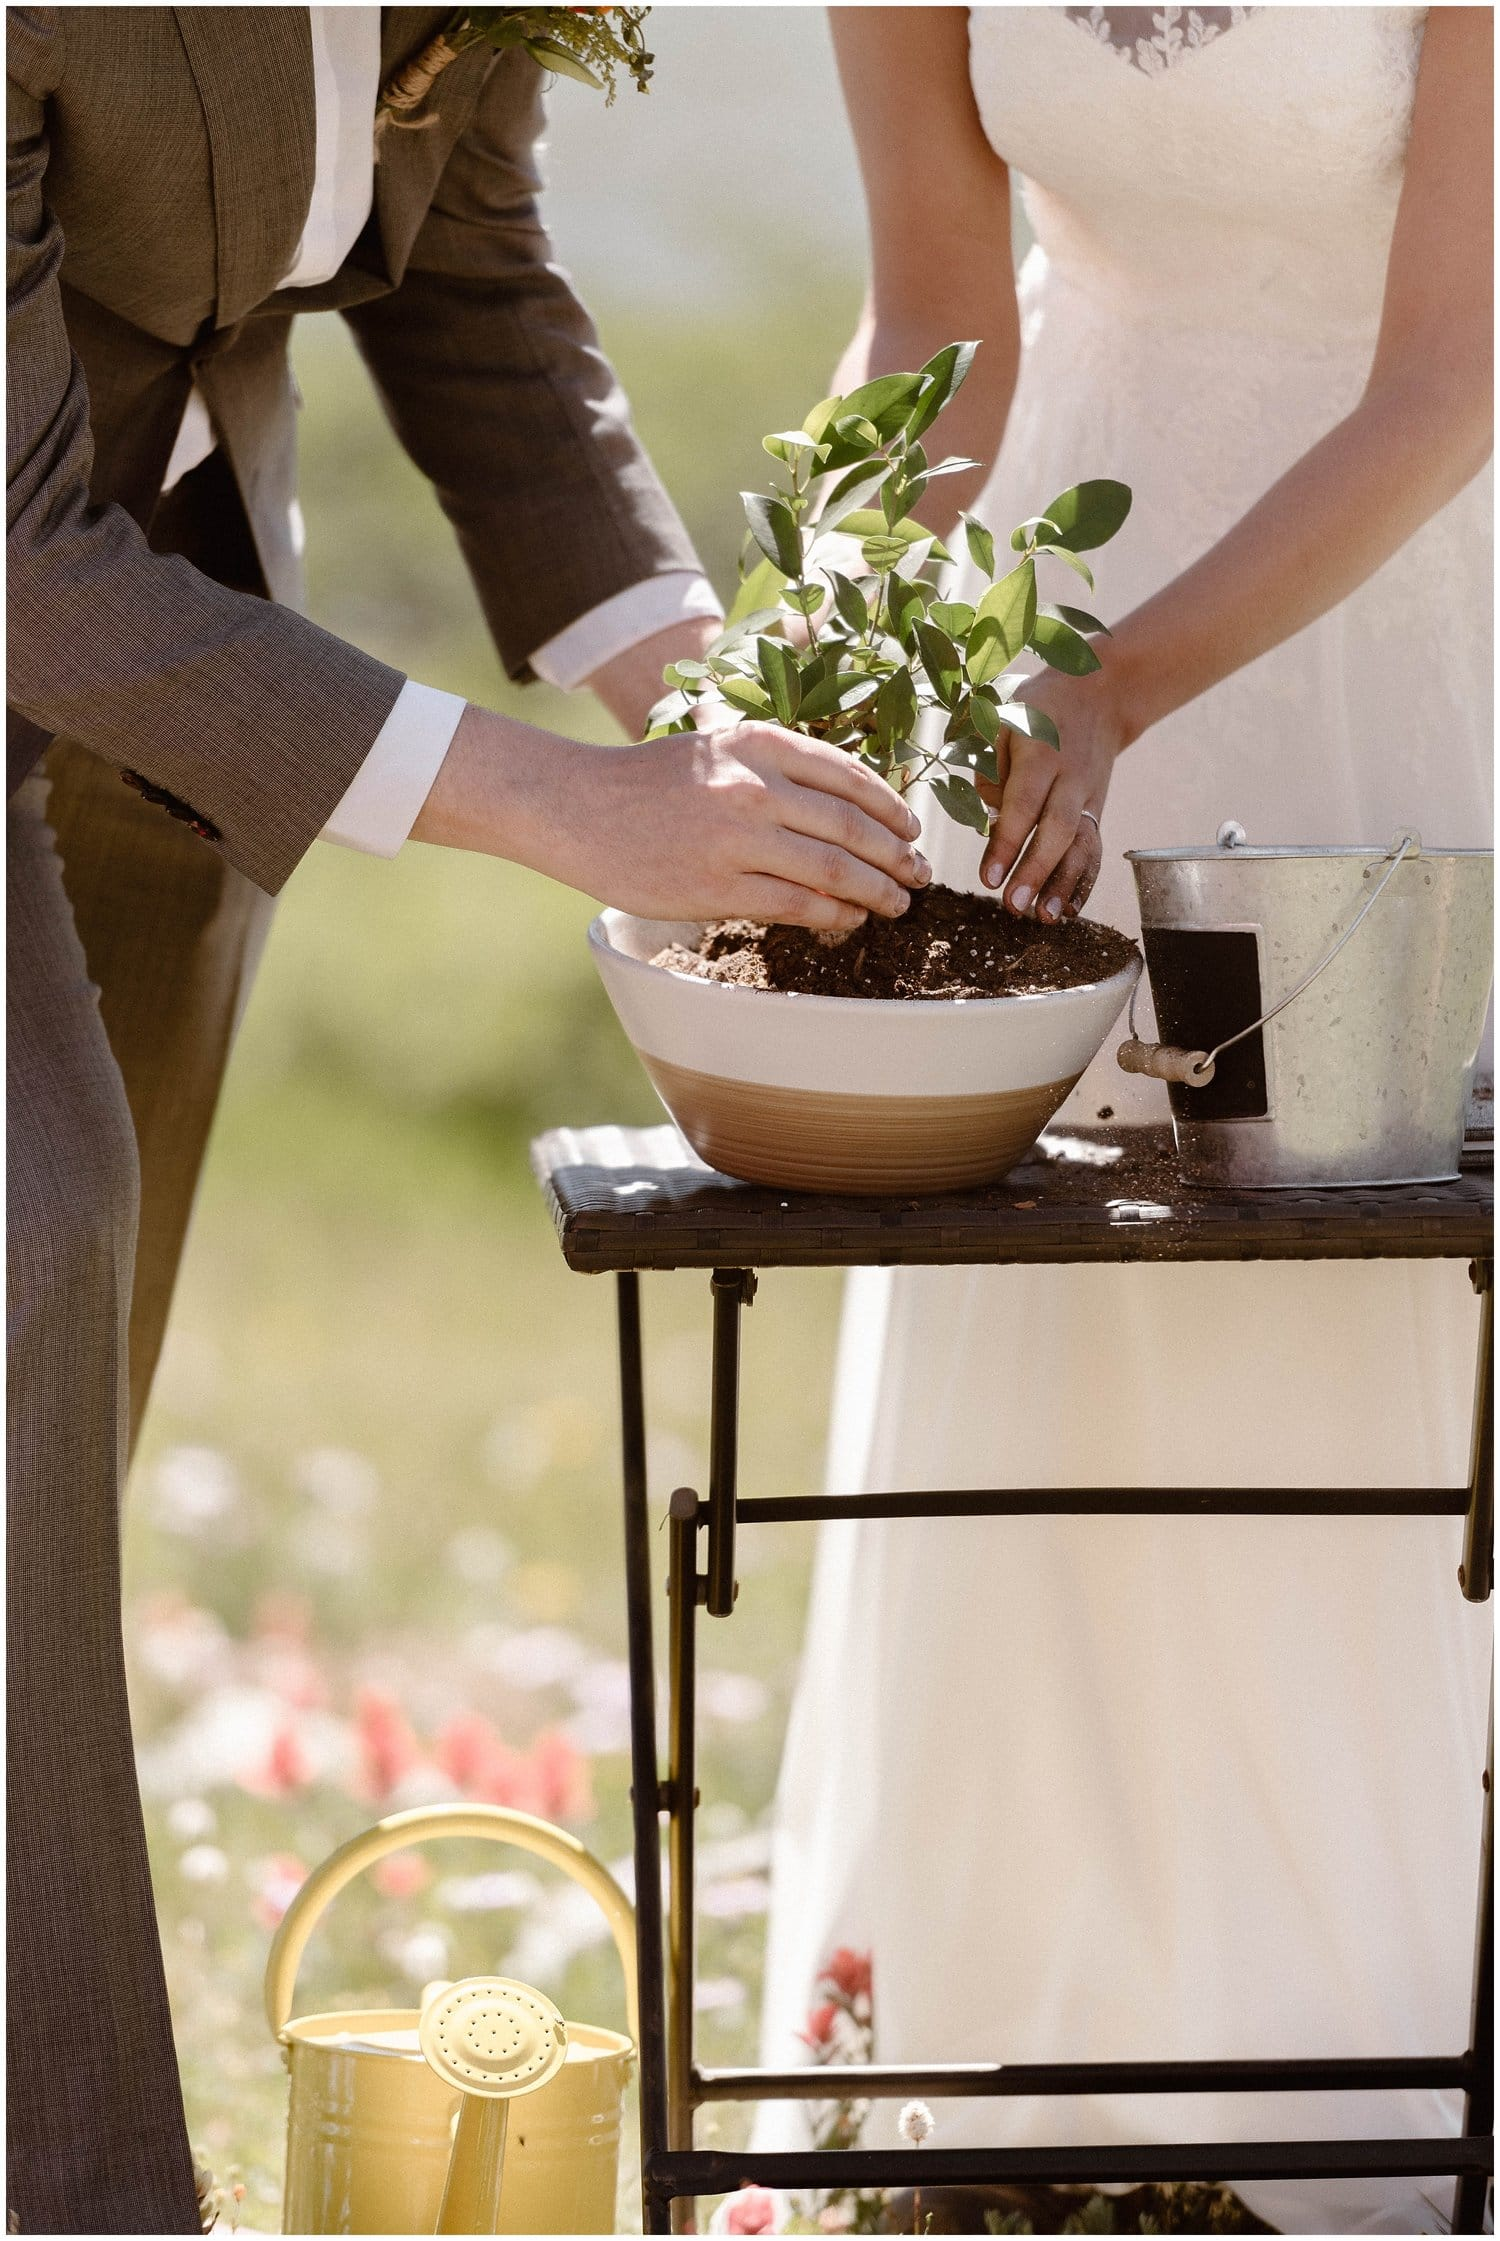 Close-up of bride and groom putting a plant in a pot.